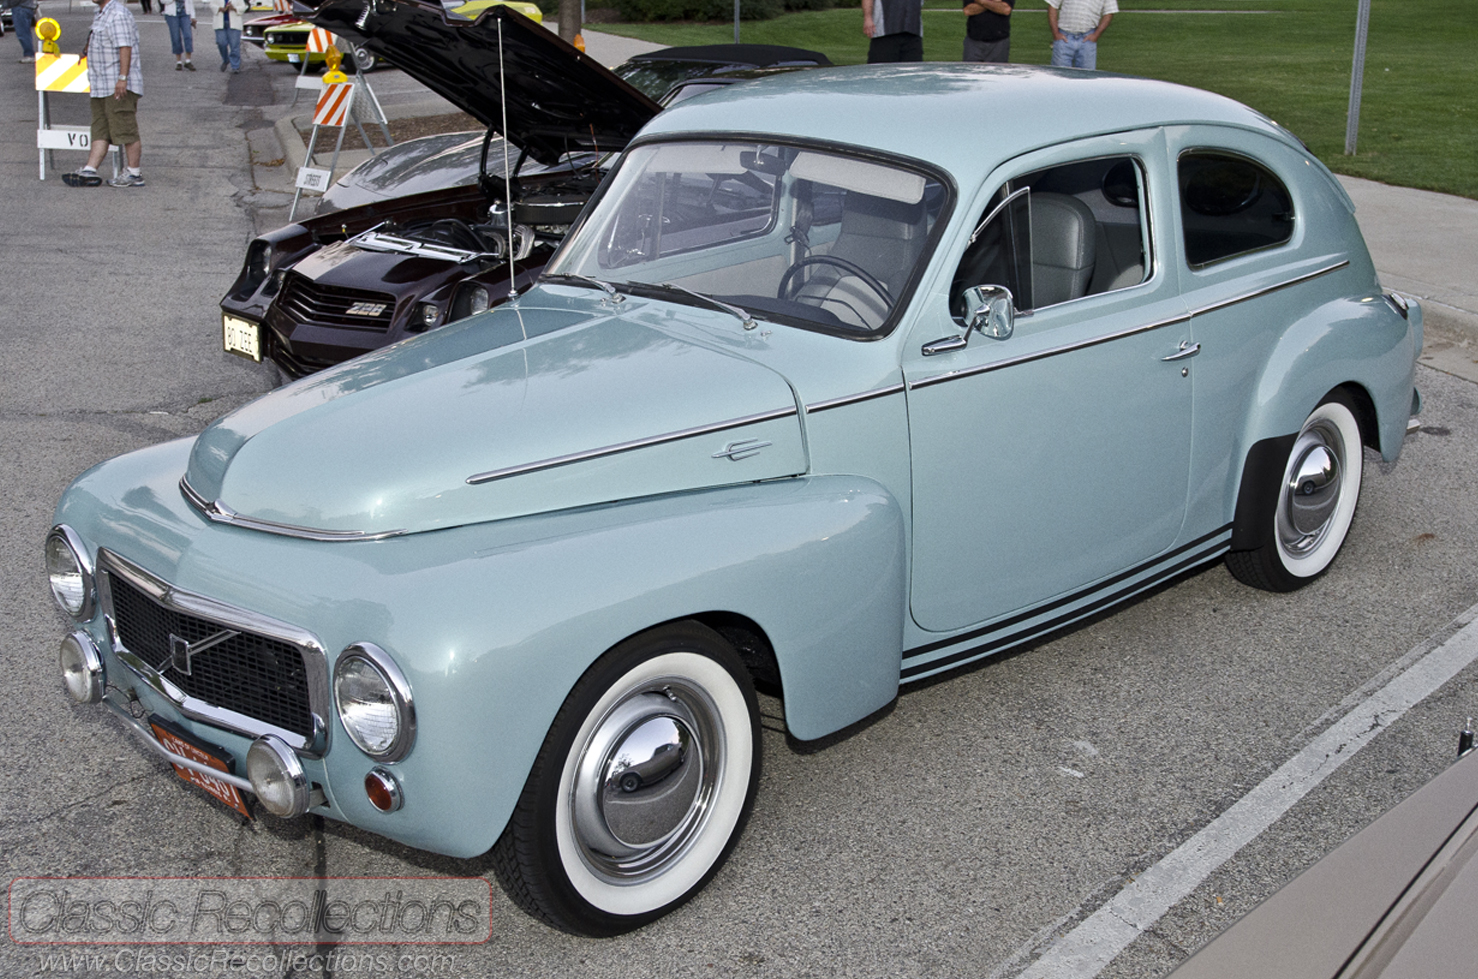 This classic Volvo 544 was restored and found at the 2012 downtown  Palatine, Illinois cruise